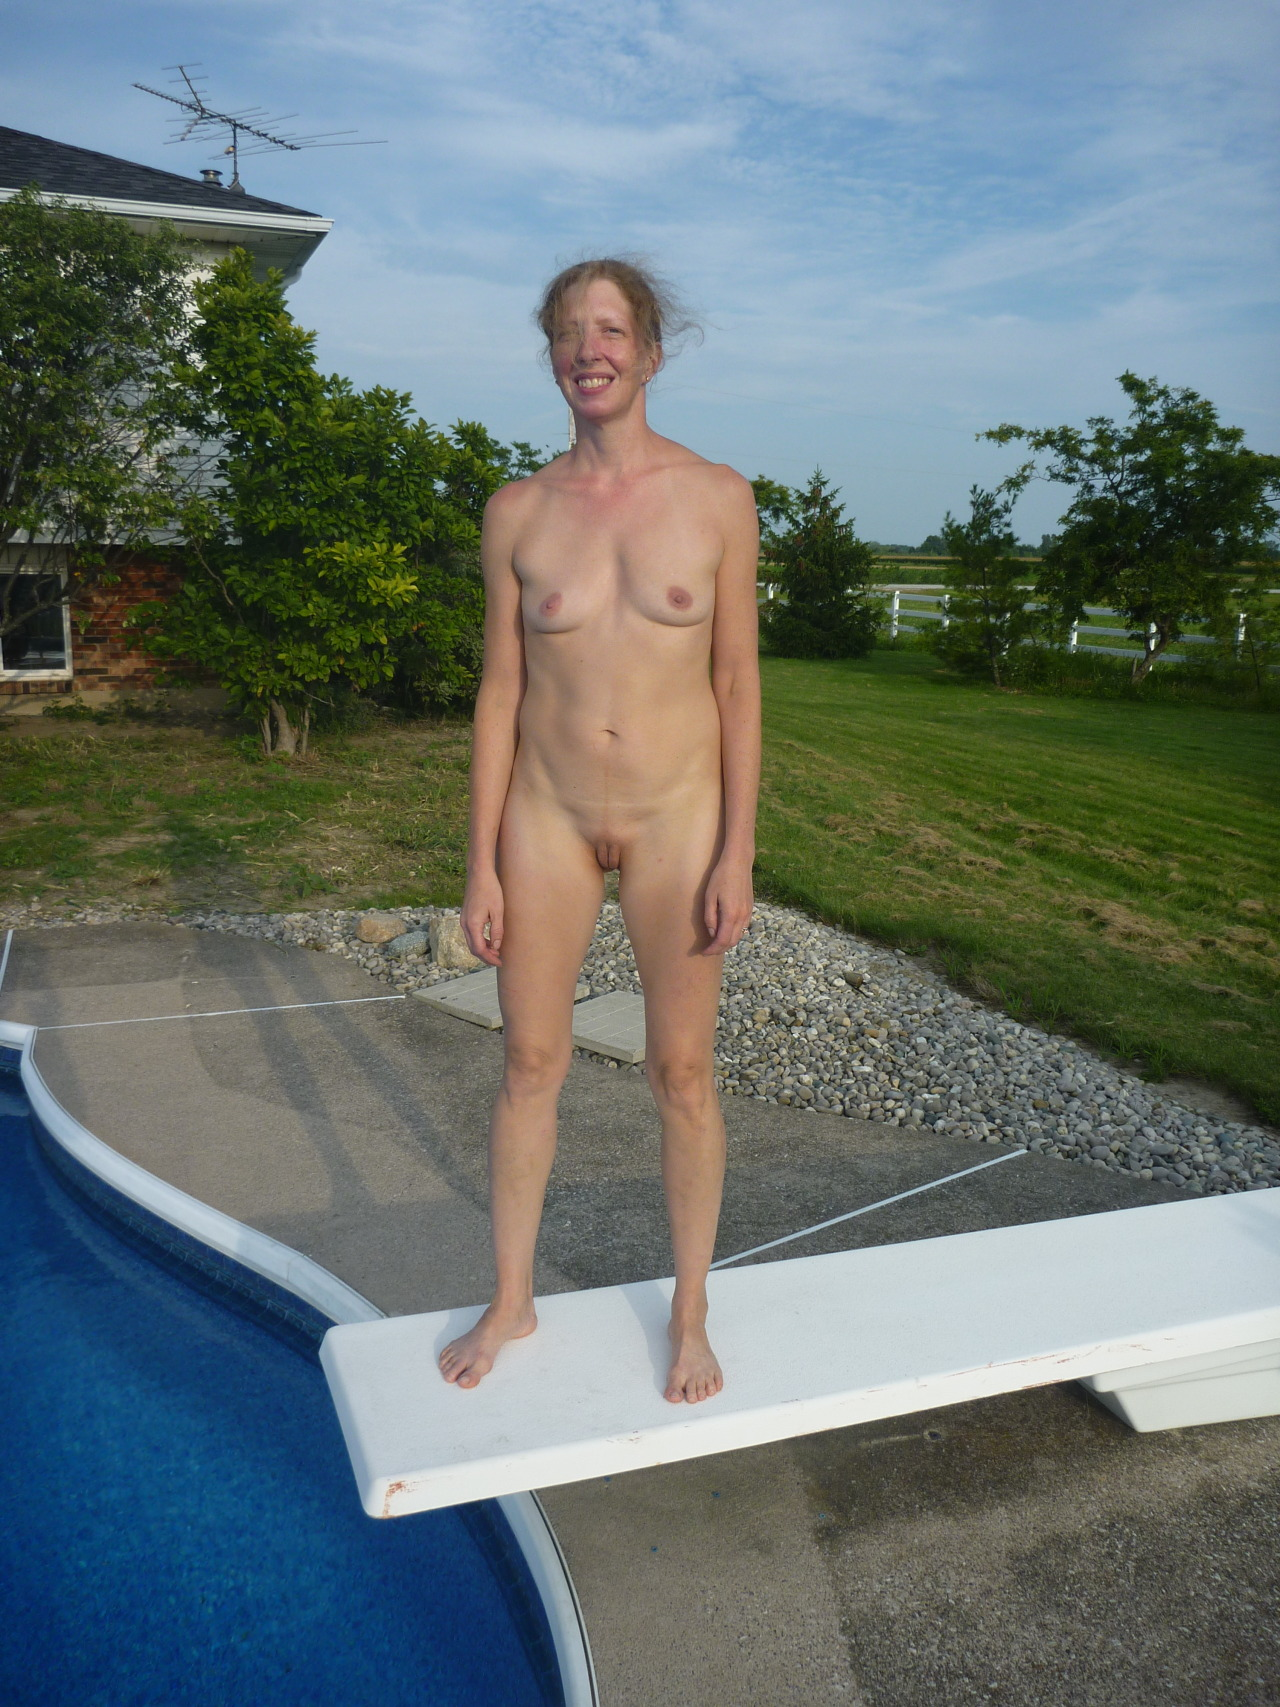 hal47691:  dudenopants:  just standing on the diving board  Very...